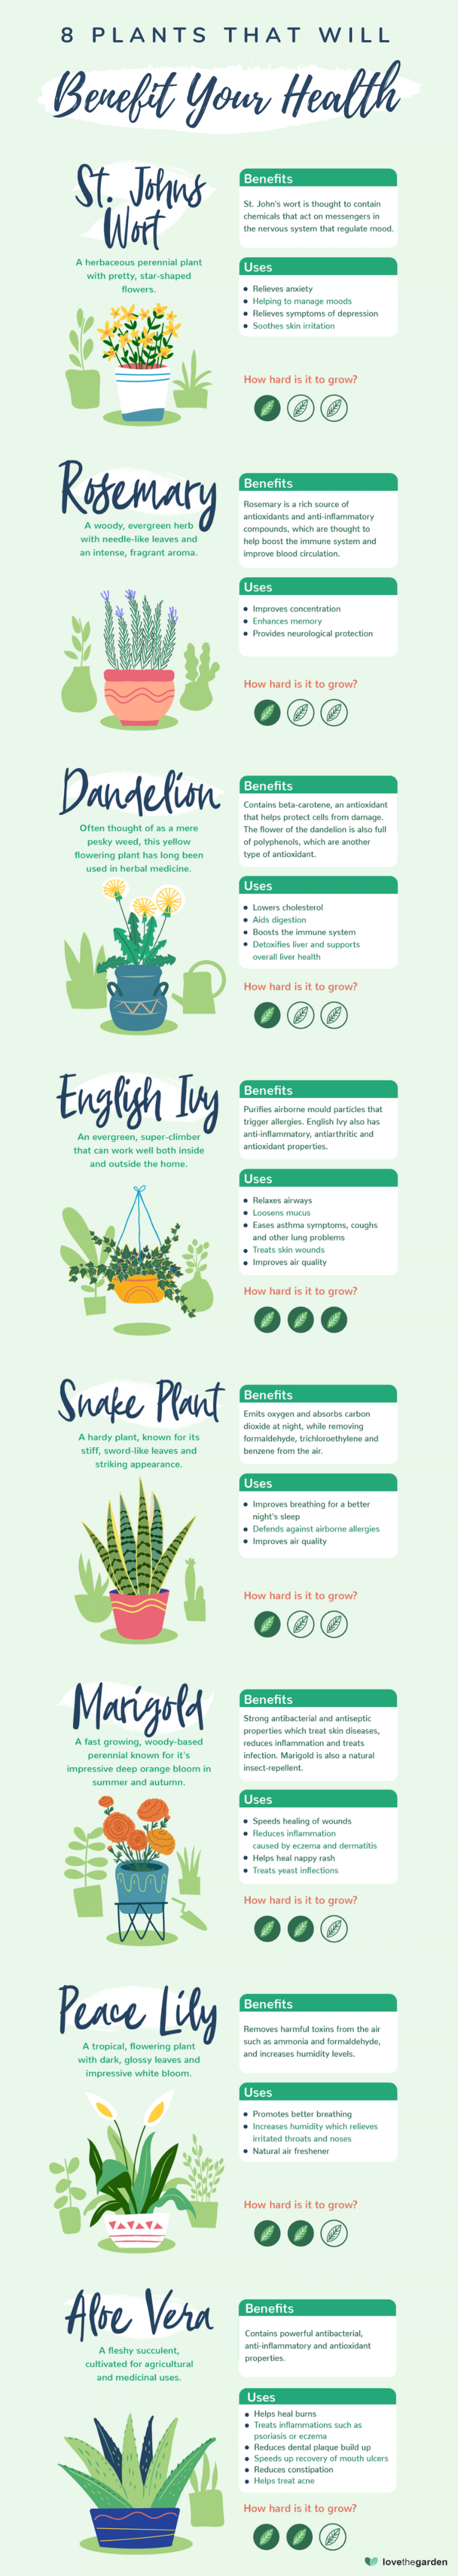 8 Houseplants That Are Good For Your Health Infographic